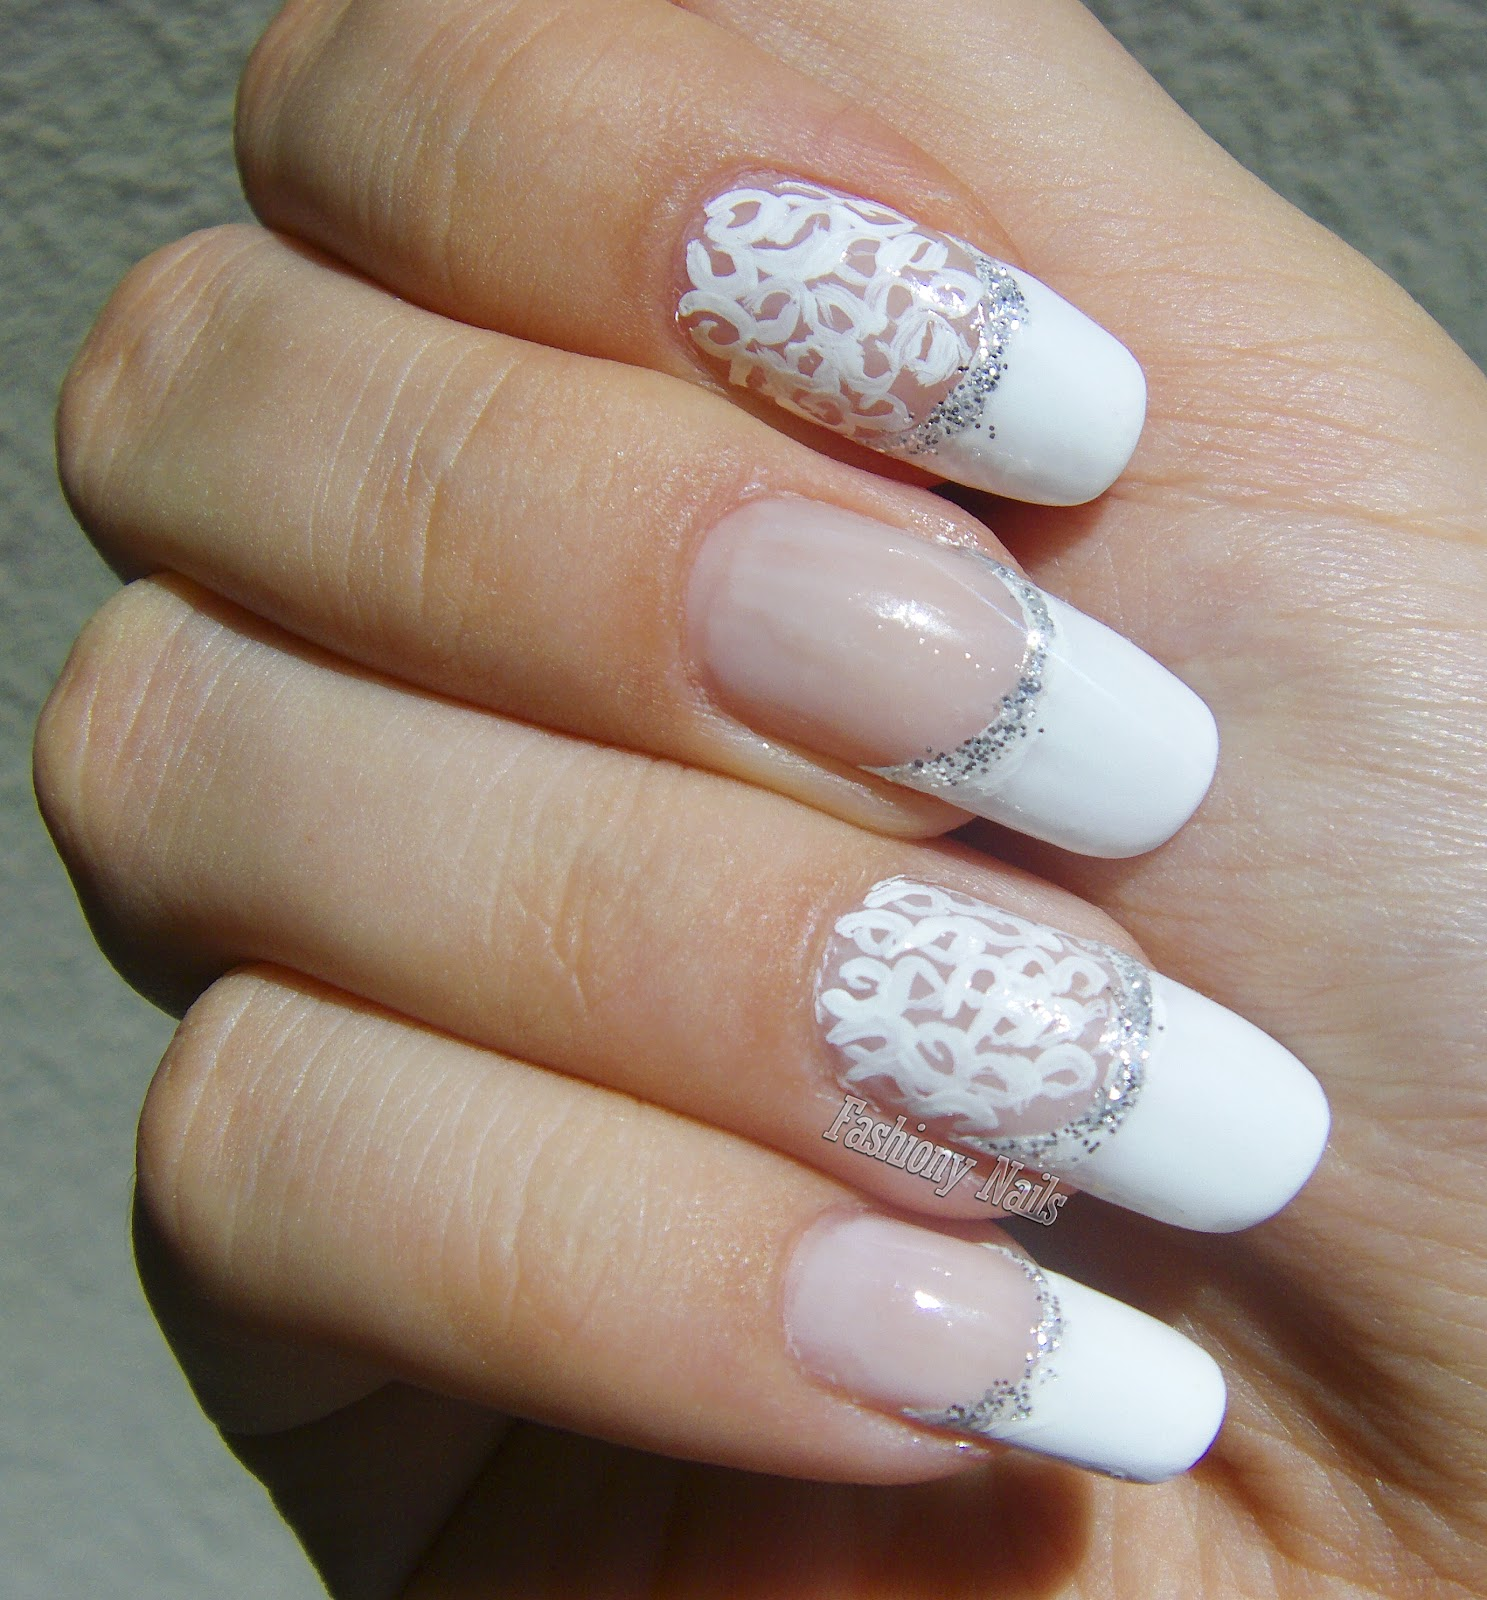 Bridal Style Nail Design | Fashiony Nails | Beauty Blog